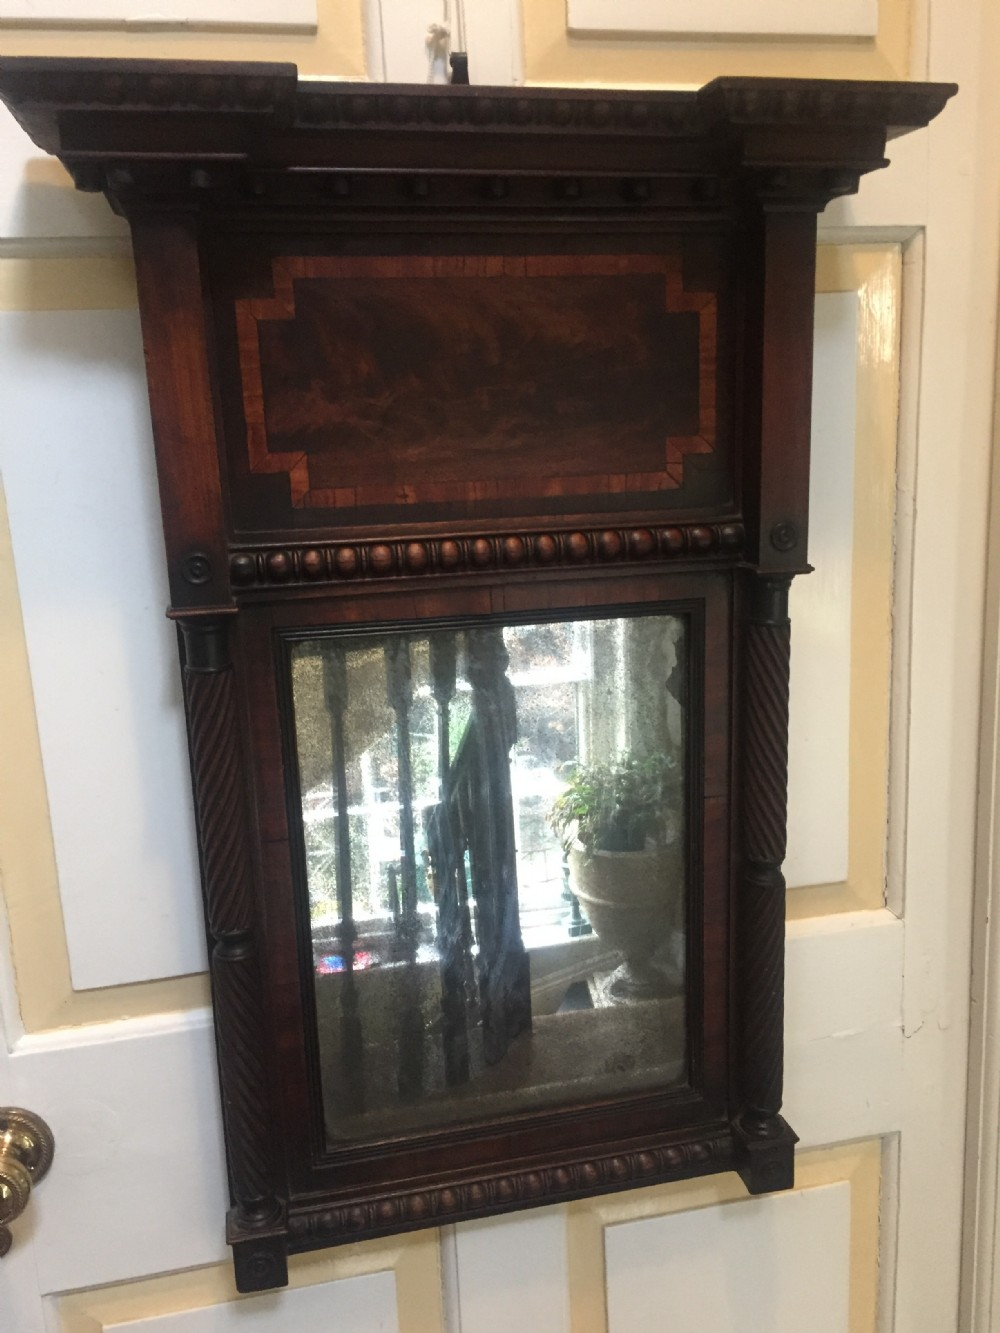 early c19th regency period mahogany framed pier mirror of architectural inspiration